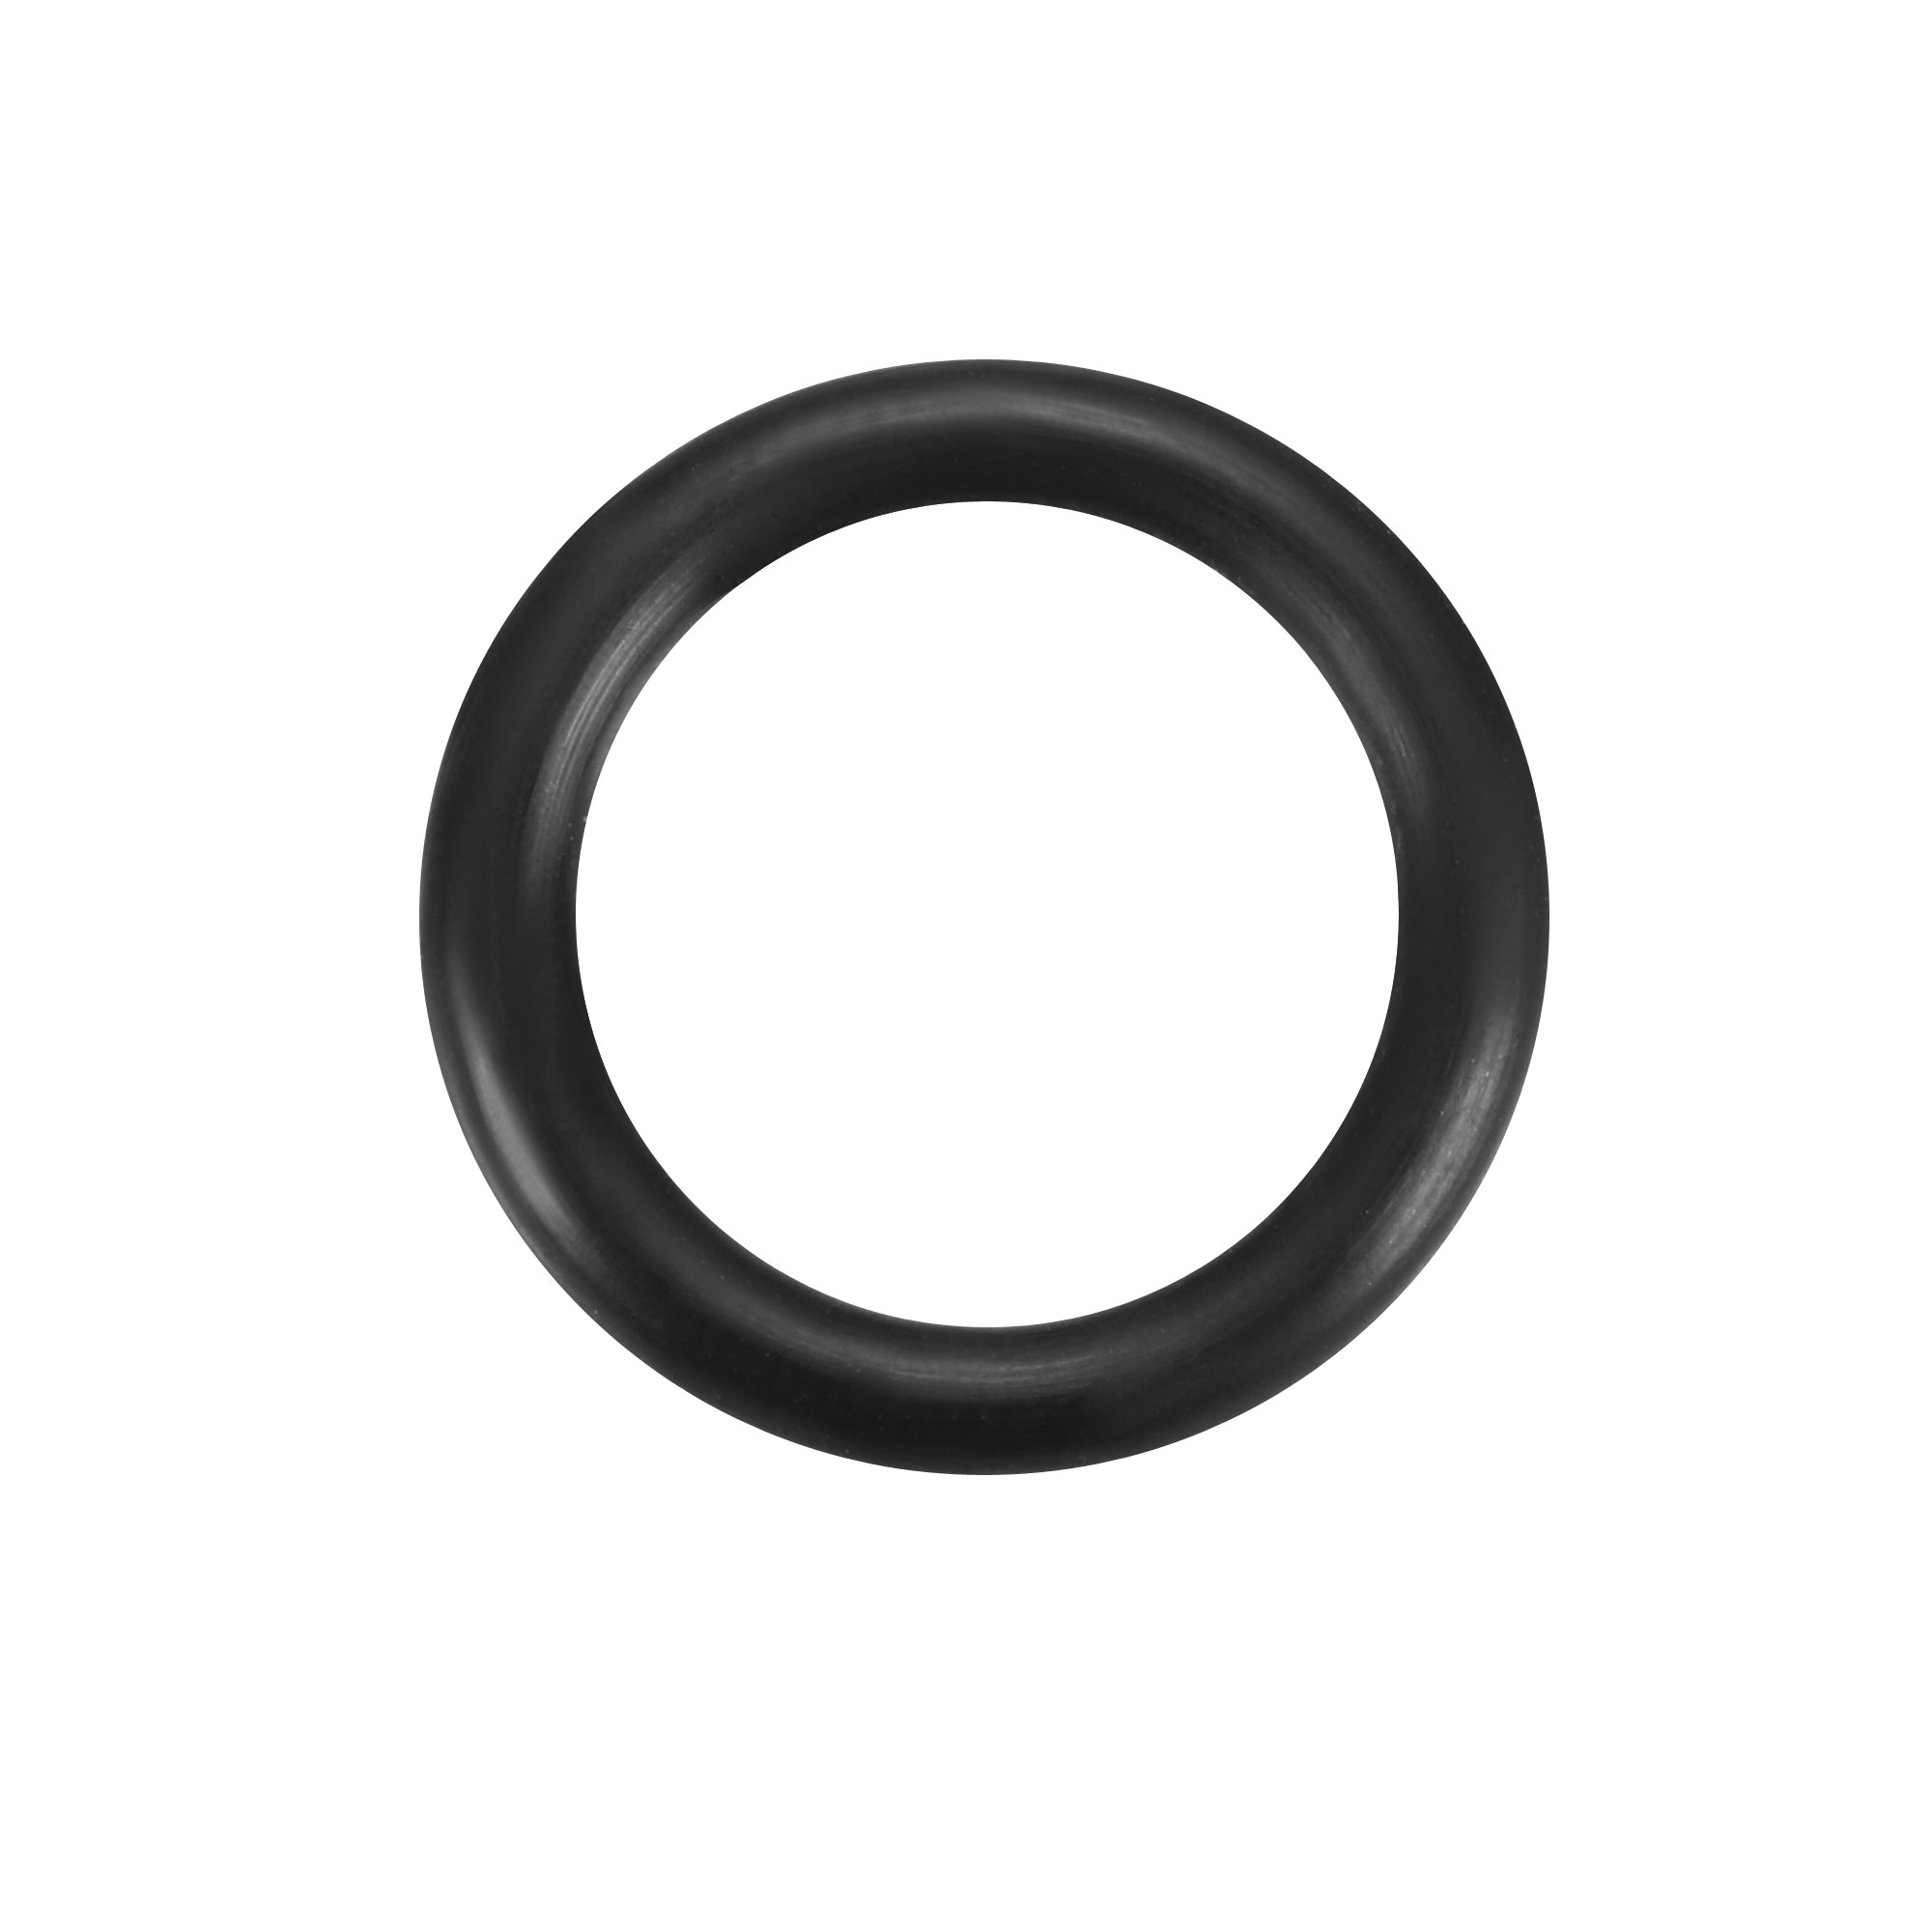 21mm x 15mm Black Rubber Oil Seal O Rings Gaskets Grommets